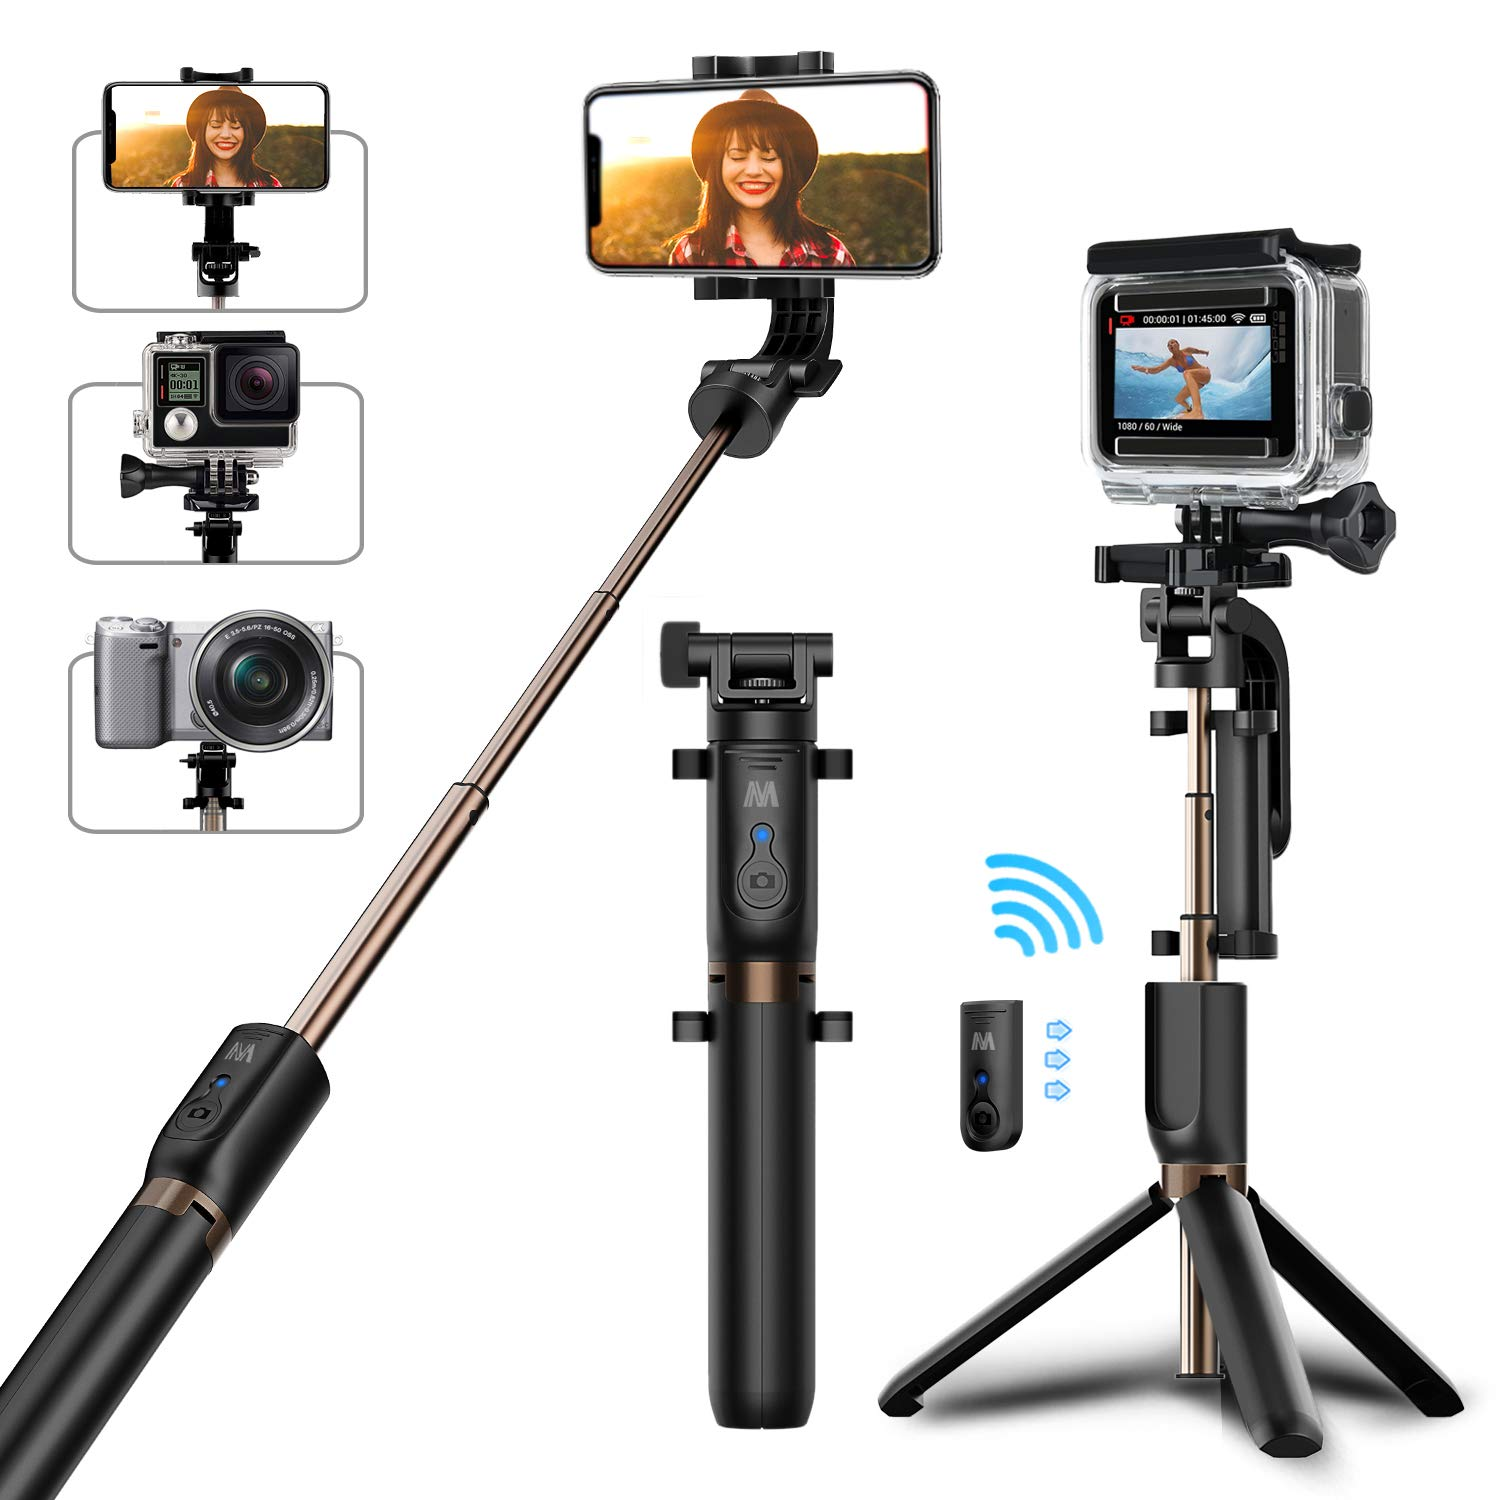 Selfie Stick Tripod, Matone Bluetooth Selfie Stick with Tripod Stand and Detachable Remote, Extendable Monopod for iPhone X/XS Max/XR/8 Plus/7/6S Plus, Galaxy S10/S10 Plus/S10e, GoPro & Action Cameras by Matone